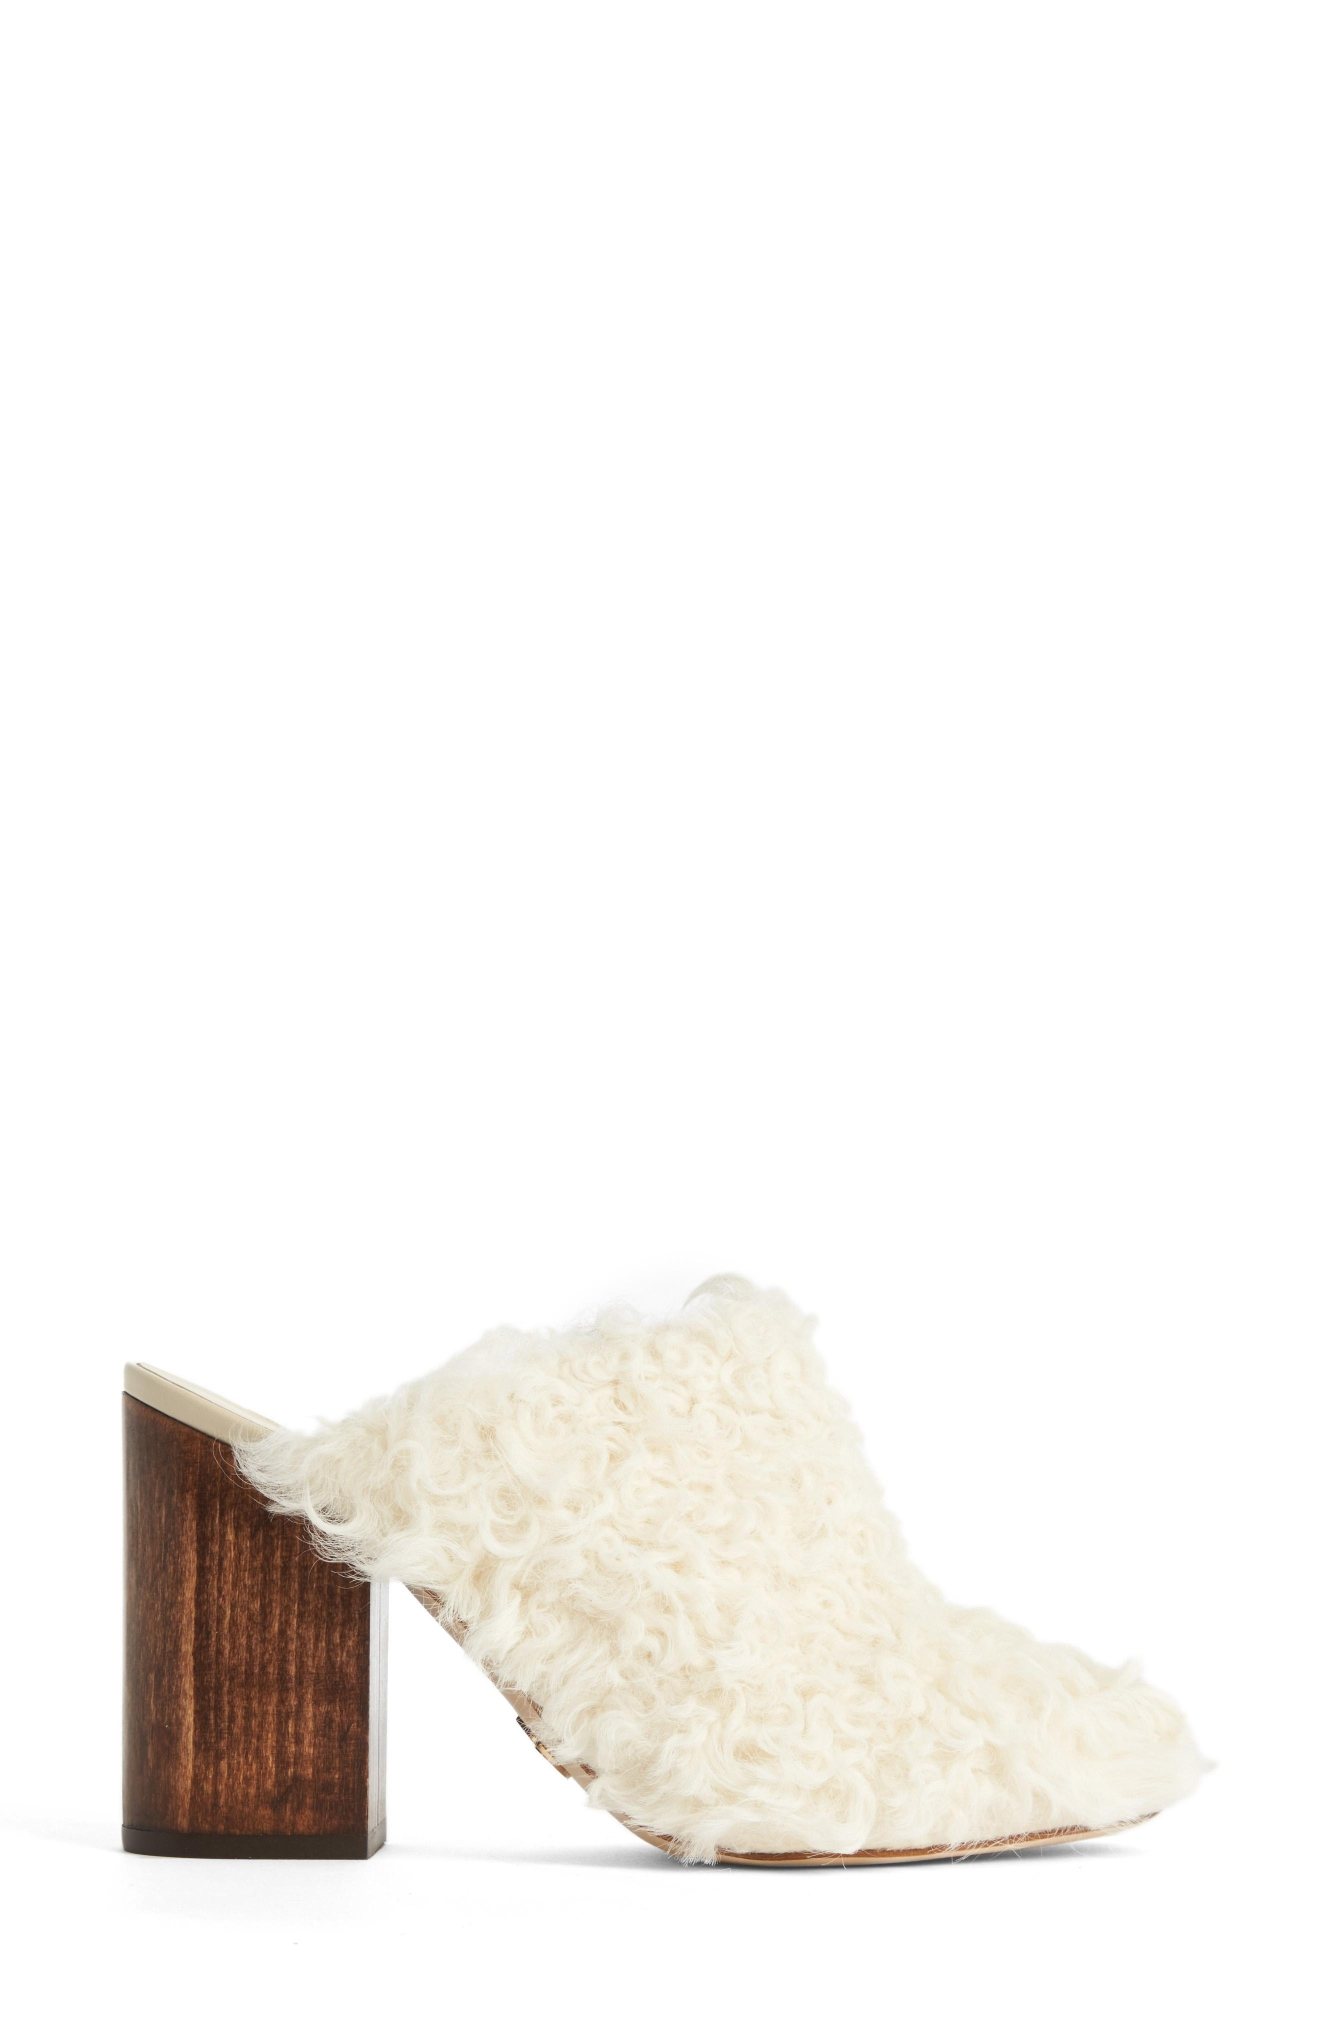 Brother Vellies Bianca Mule - $565. Get it at nordstrom.com/space. (Image: Nordstrom)